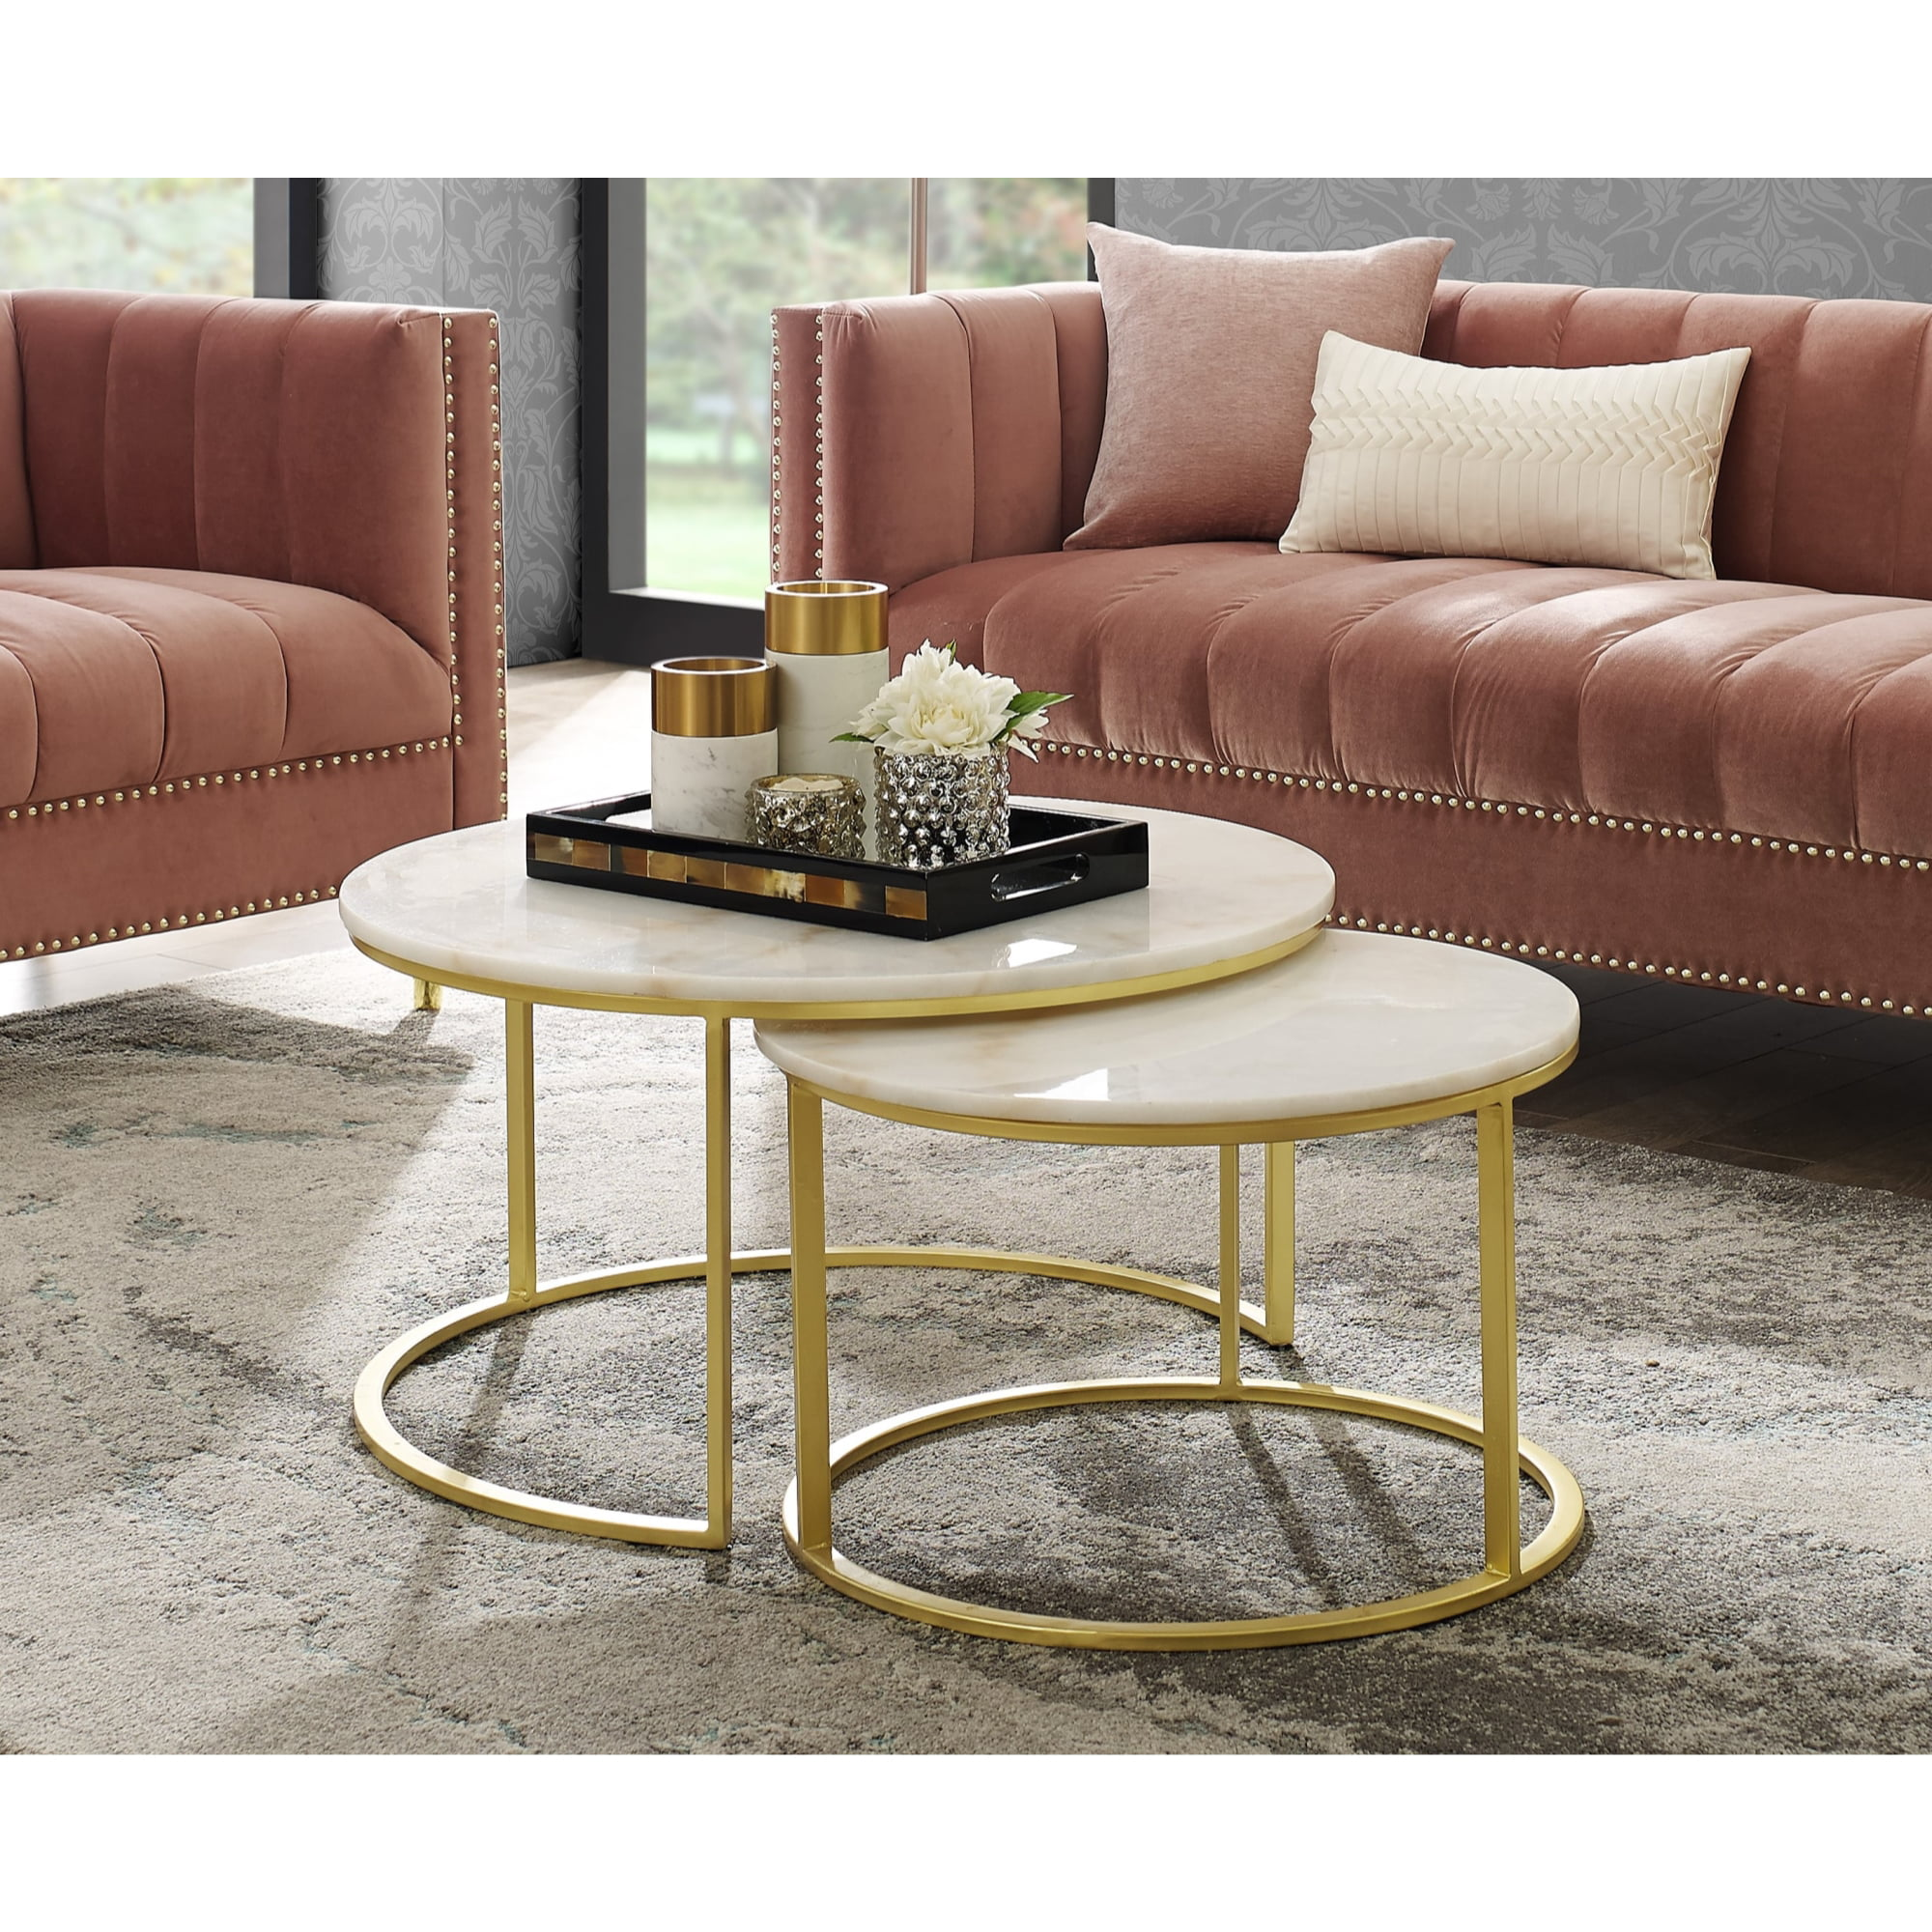 Inspired Home Asbille Nesting Coffee Table Round Natural Marble Top Stackable Metal Base Set Of 2 Gold Walmart Com Walmart Com